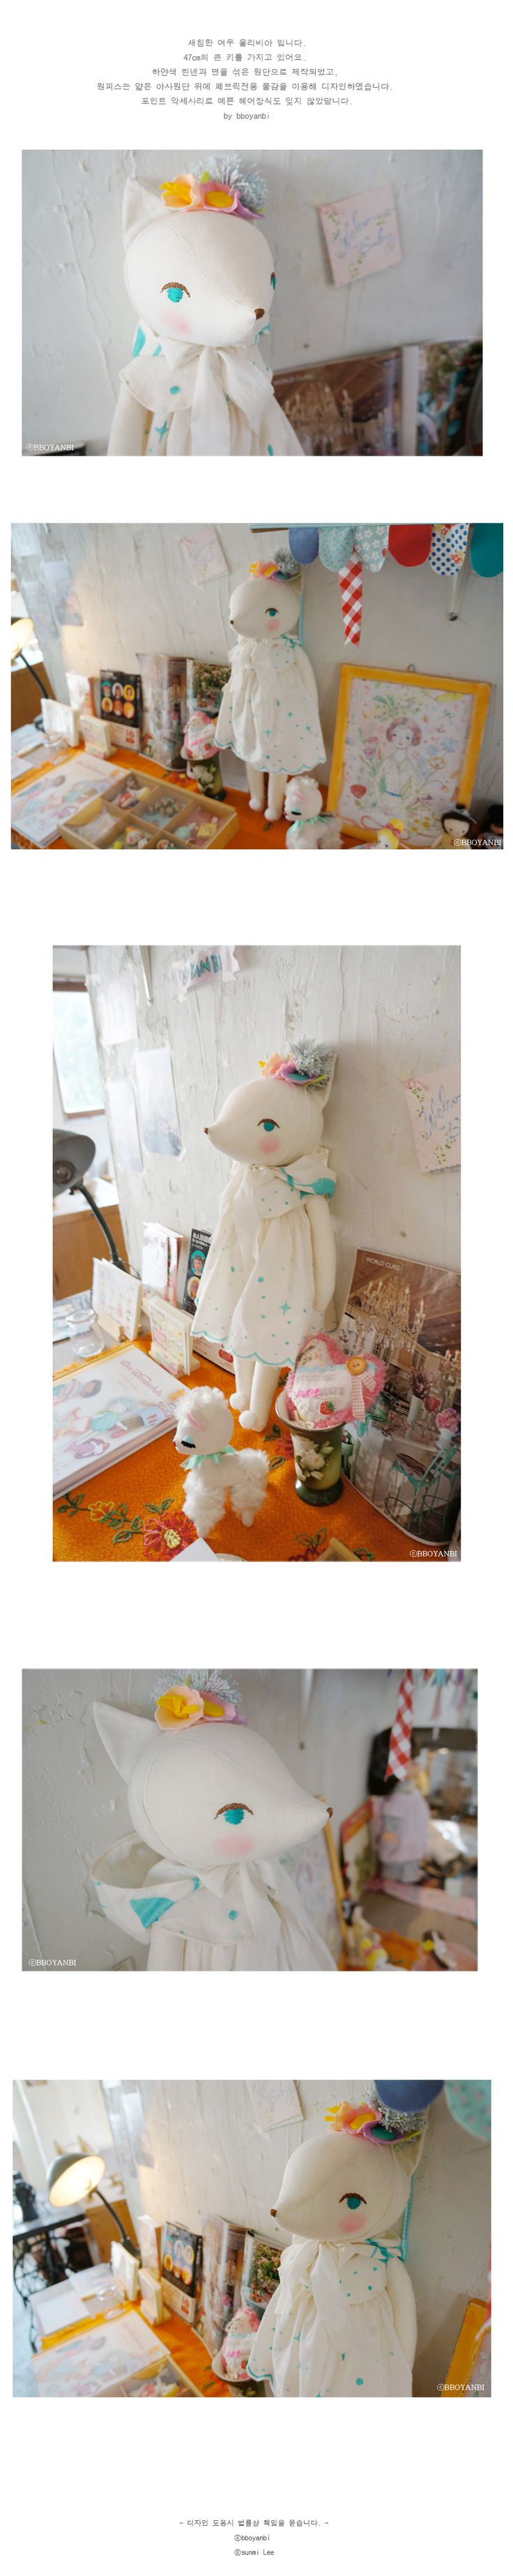 ◎ Milky Rain's Artistic doll & illustration.◇